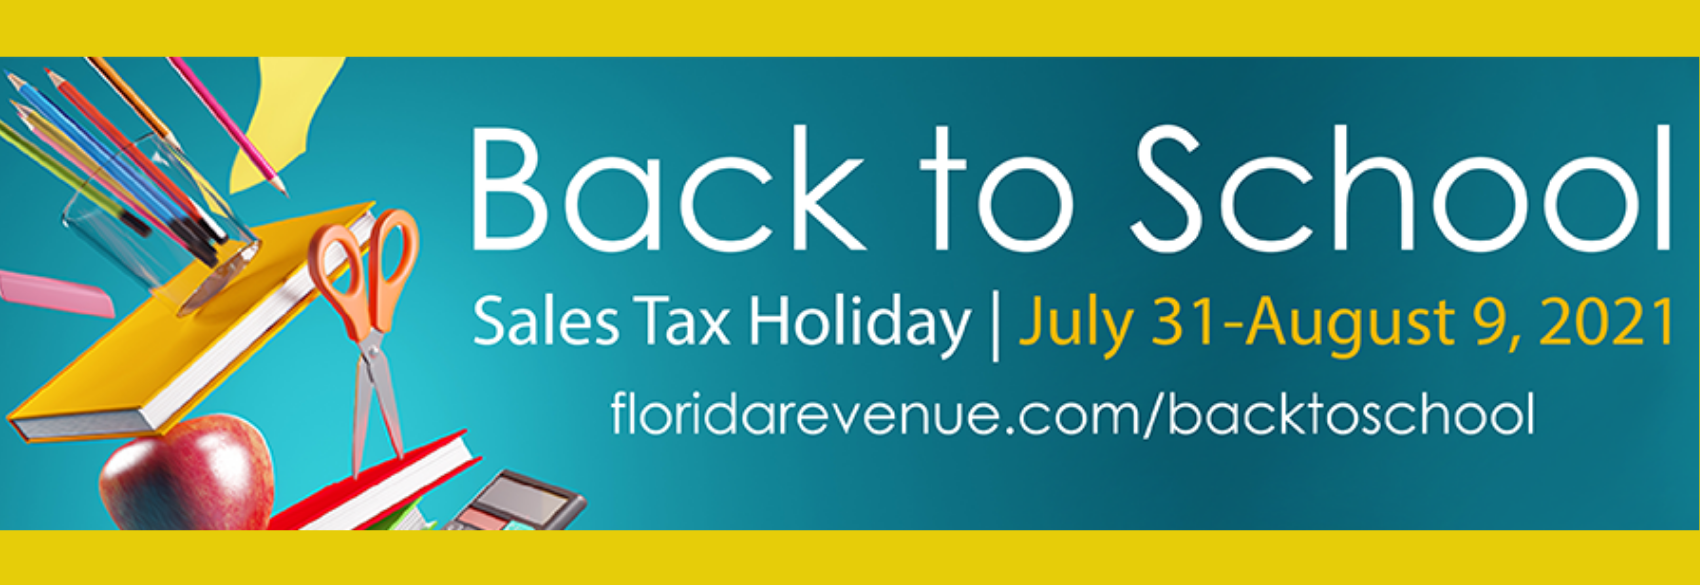 Consumers can purchase qualifying back-to-school supplies exempt from tax during the 2021 Back-to-School Sales Tax Holiday.